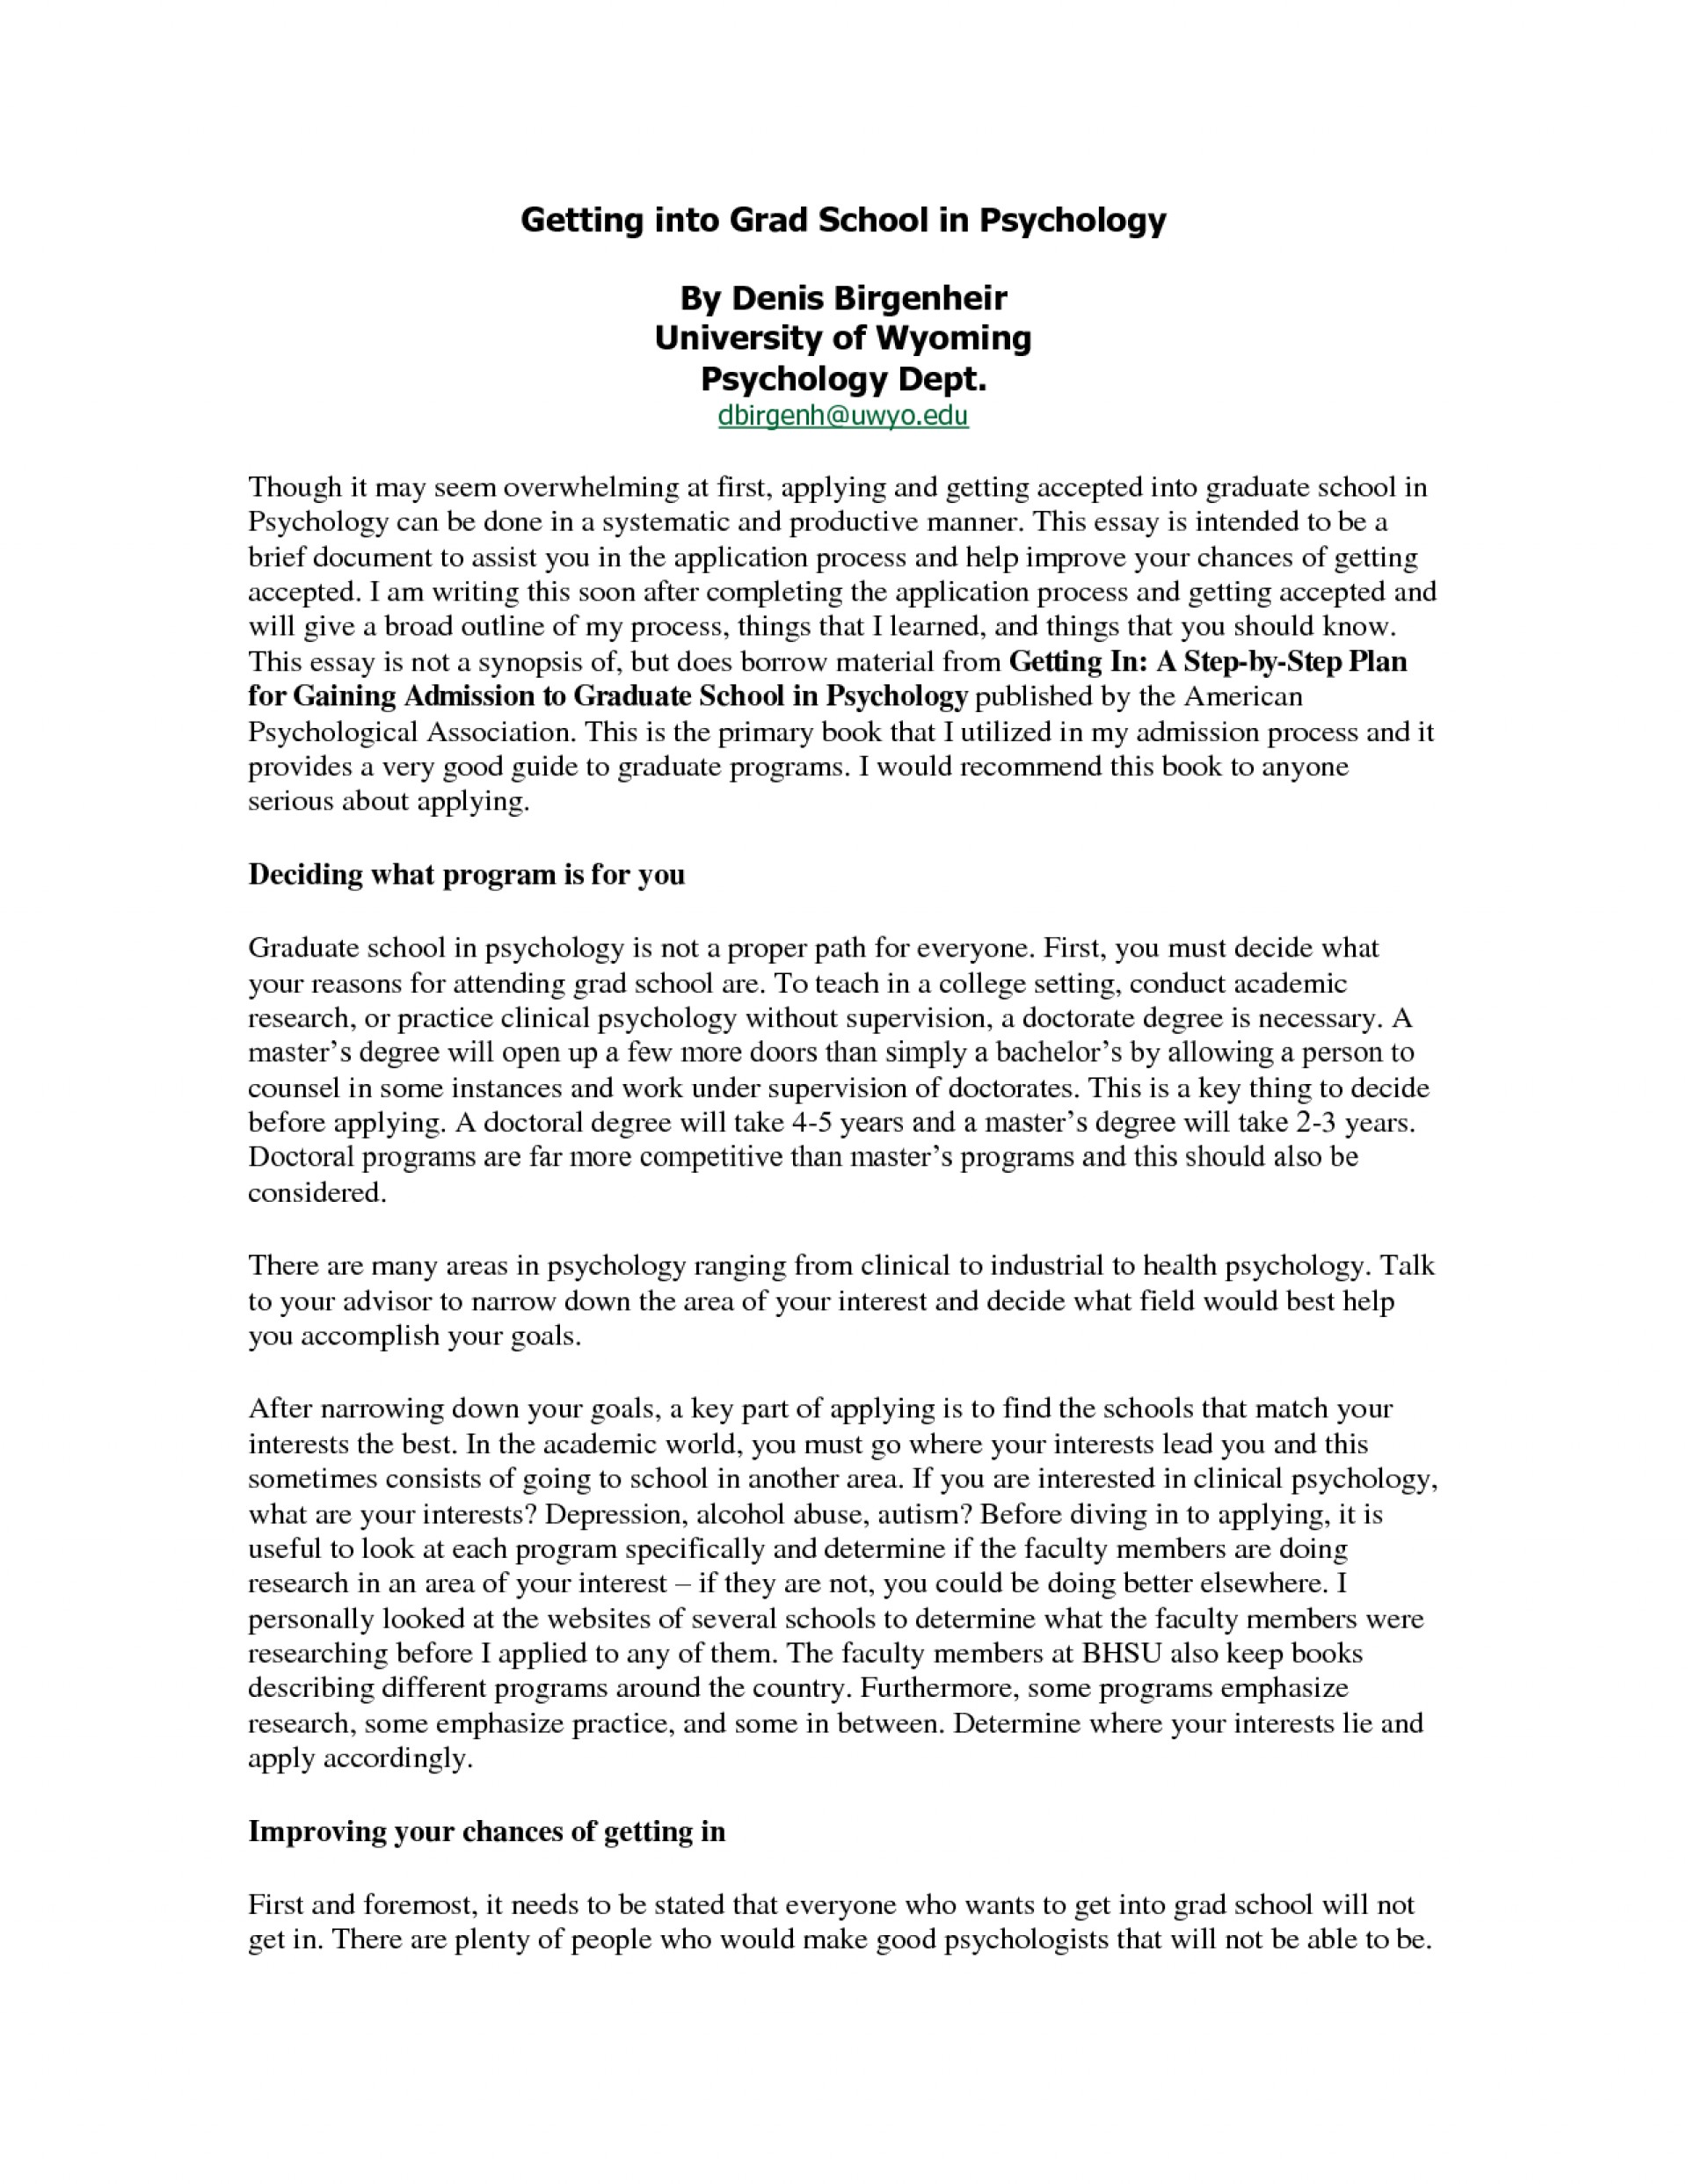 002 Graduation Essay Ydsmbeywi2 Excellent Sample High School Essays For 8th Grade 1920